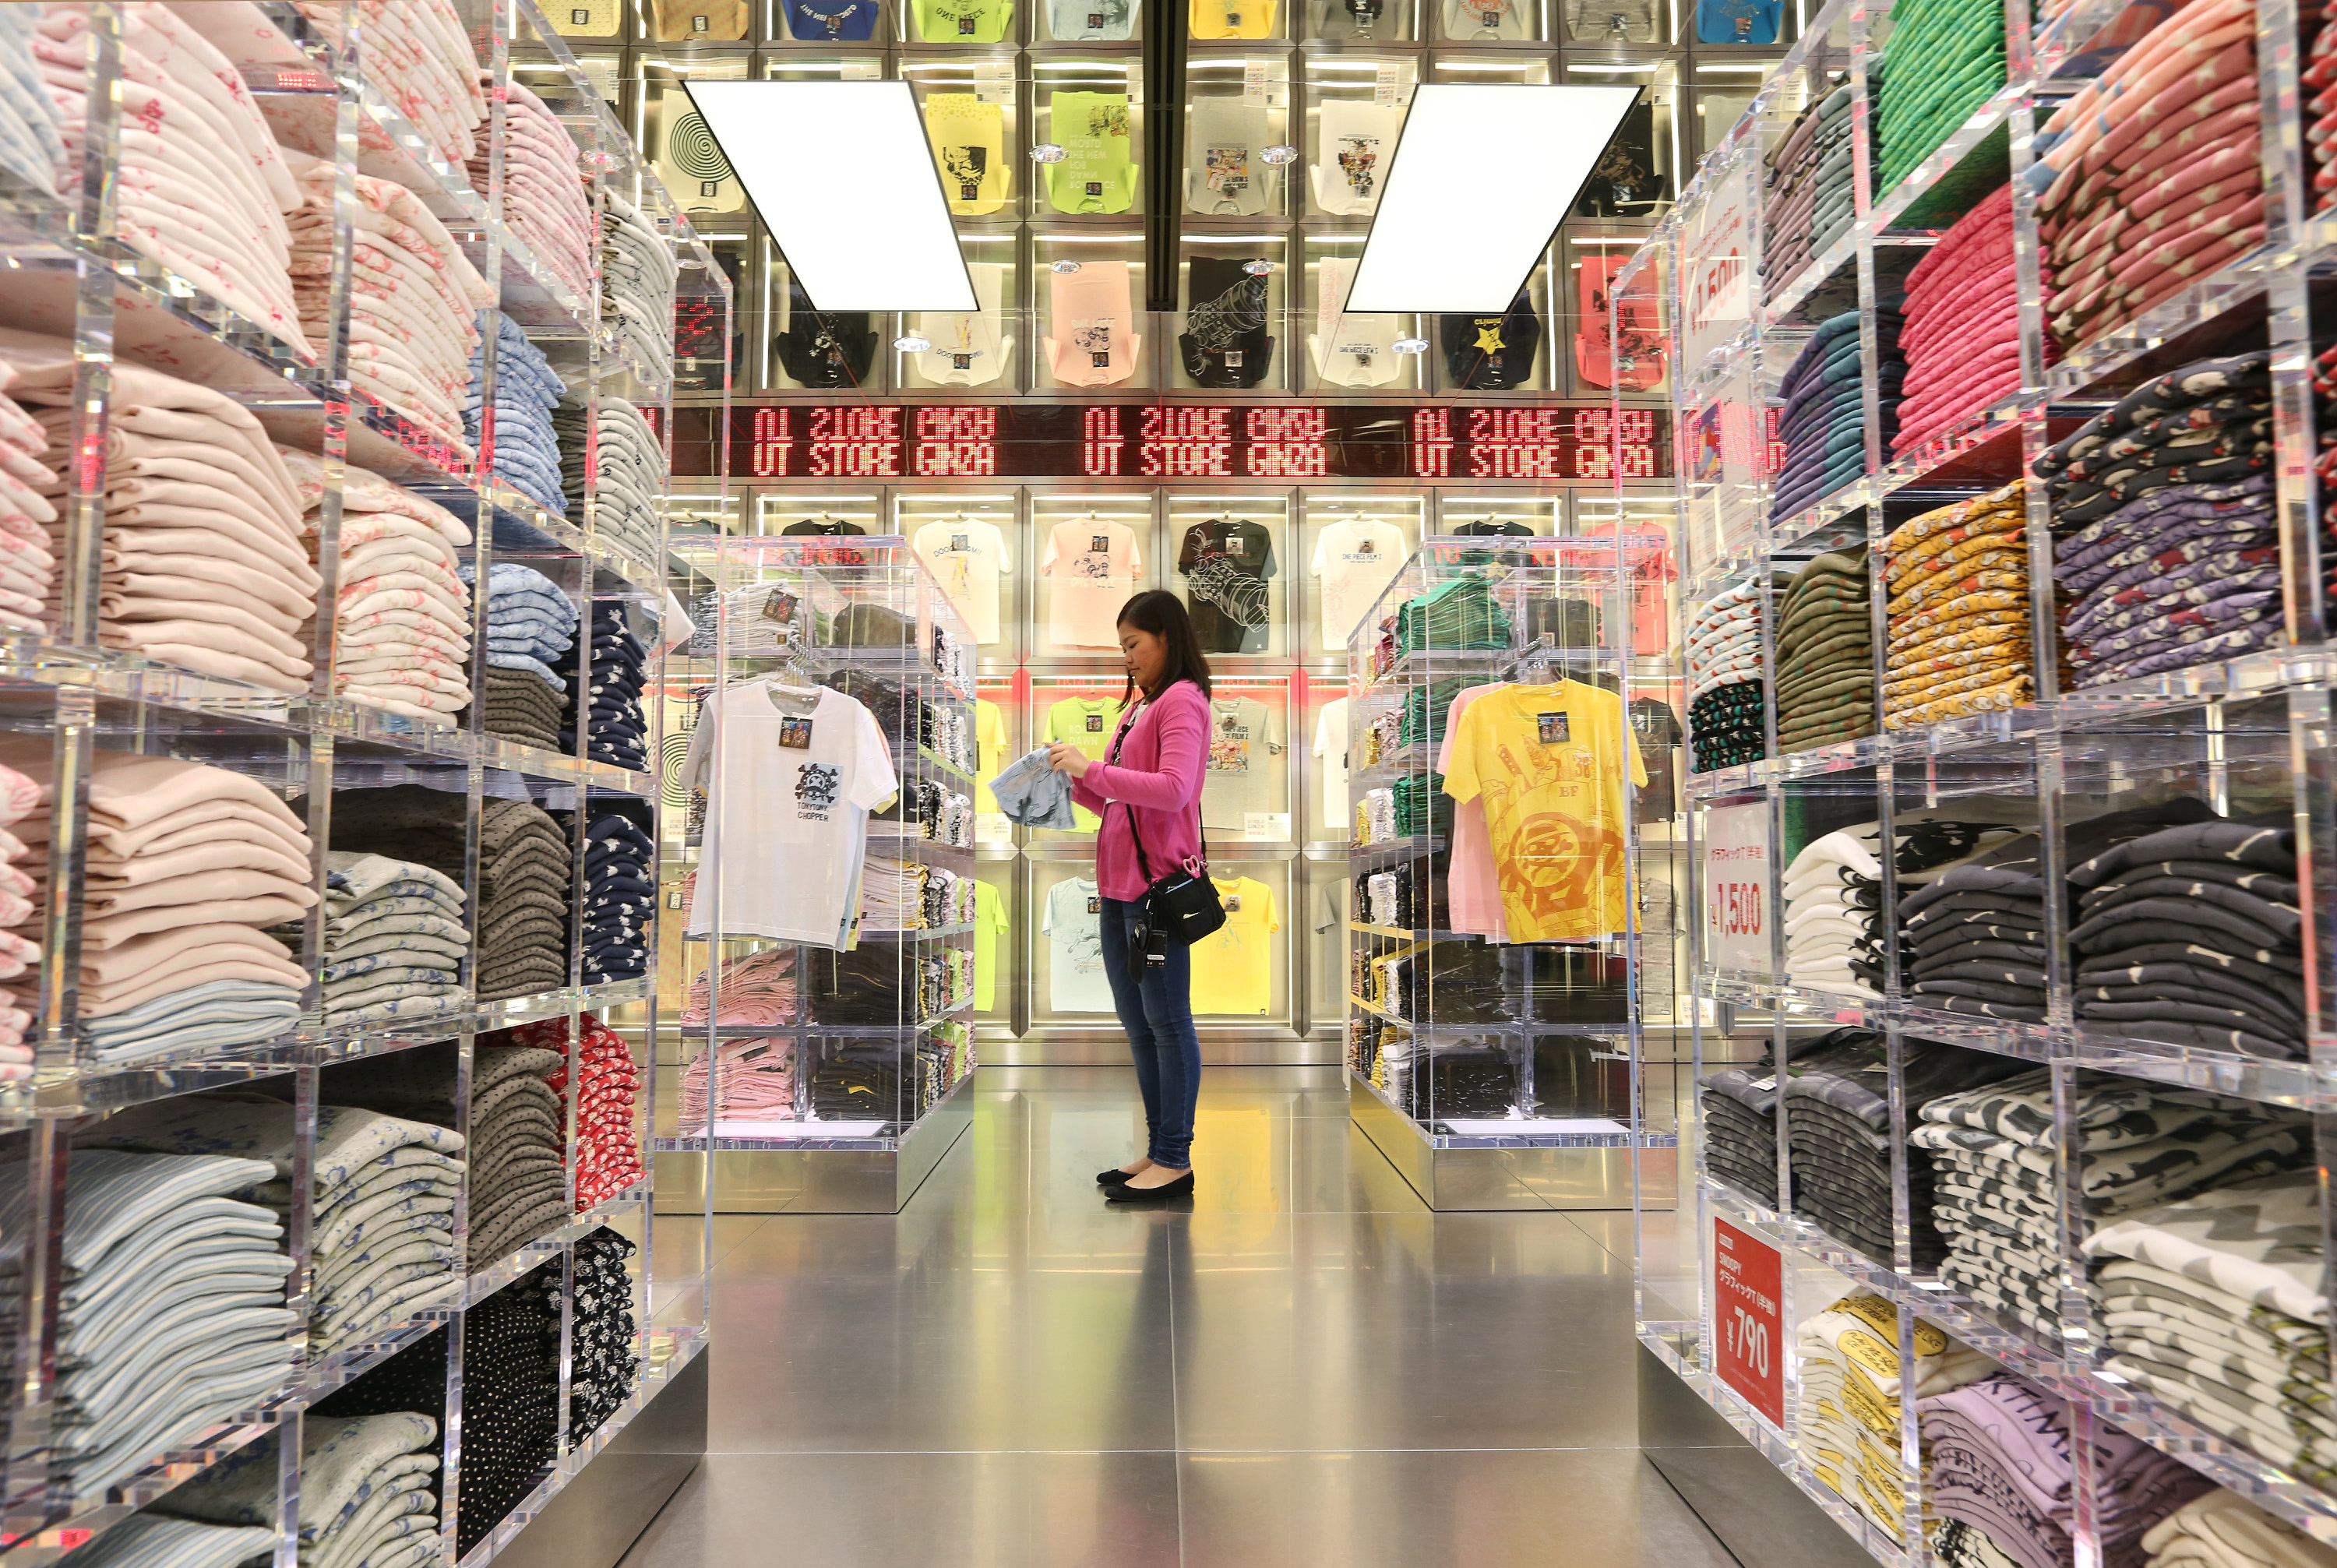 Inside Fast Retailing's Uniqlo Store Ahead Of Earnings